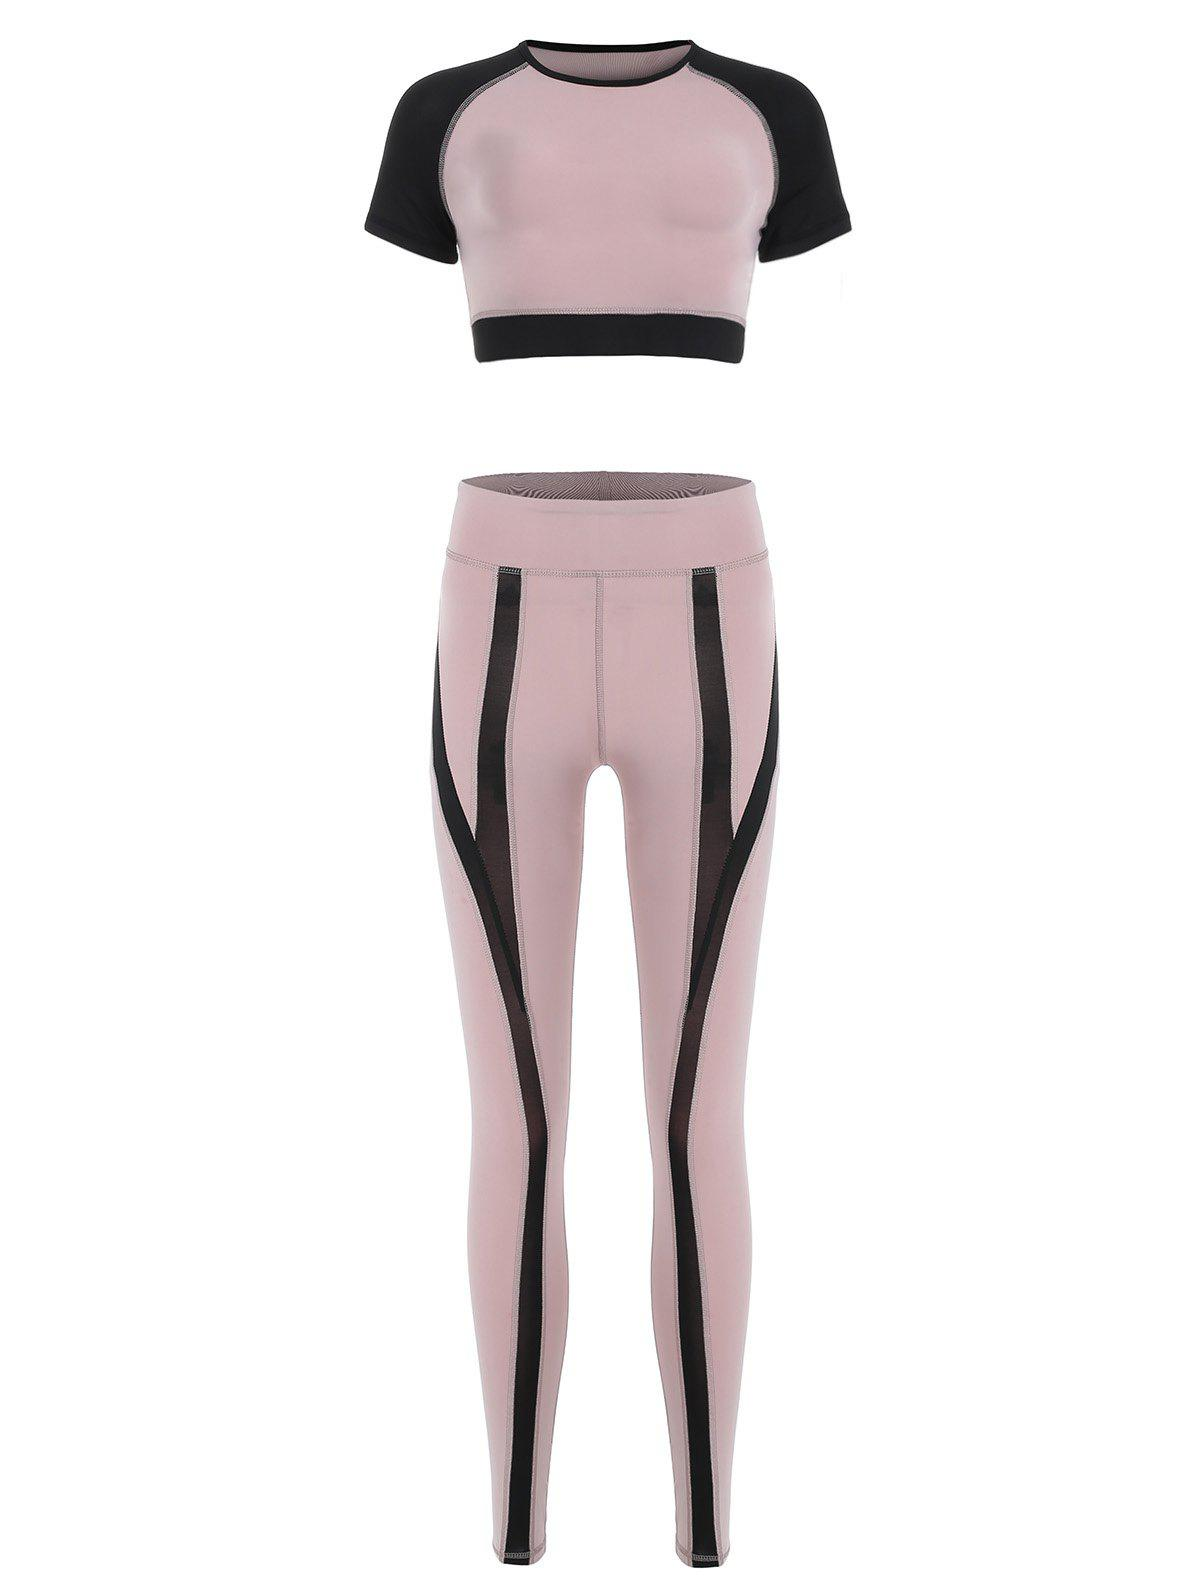 Fashion Contrast Sports Leggings with Crop Top